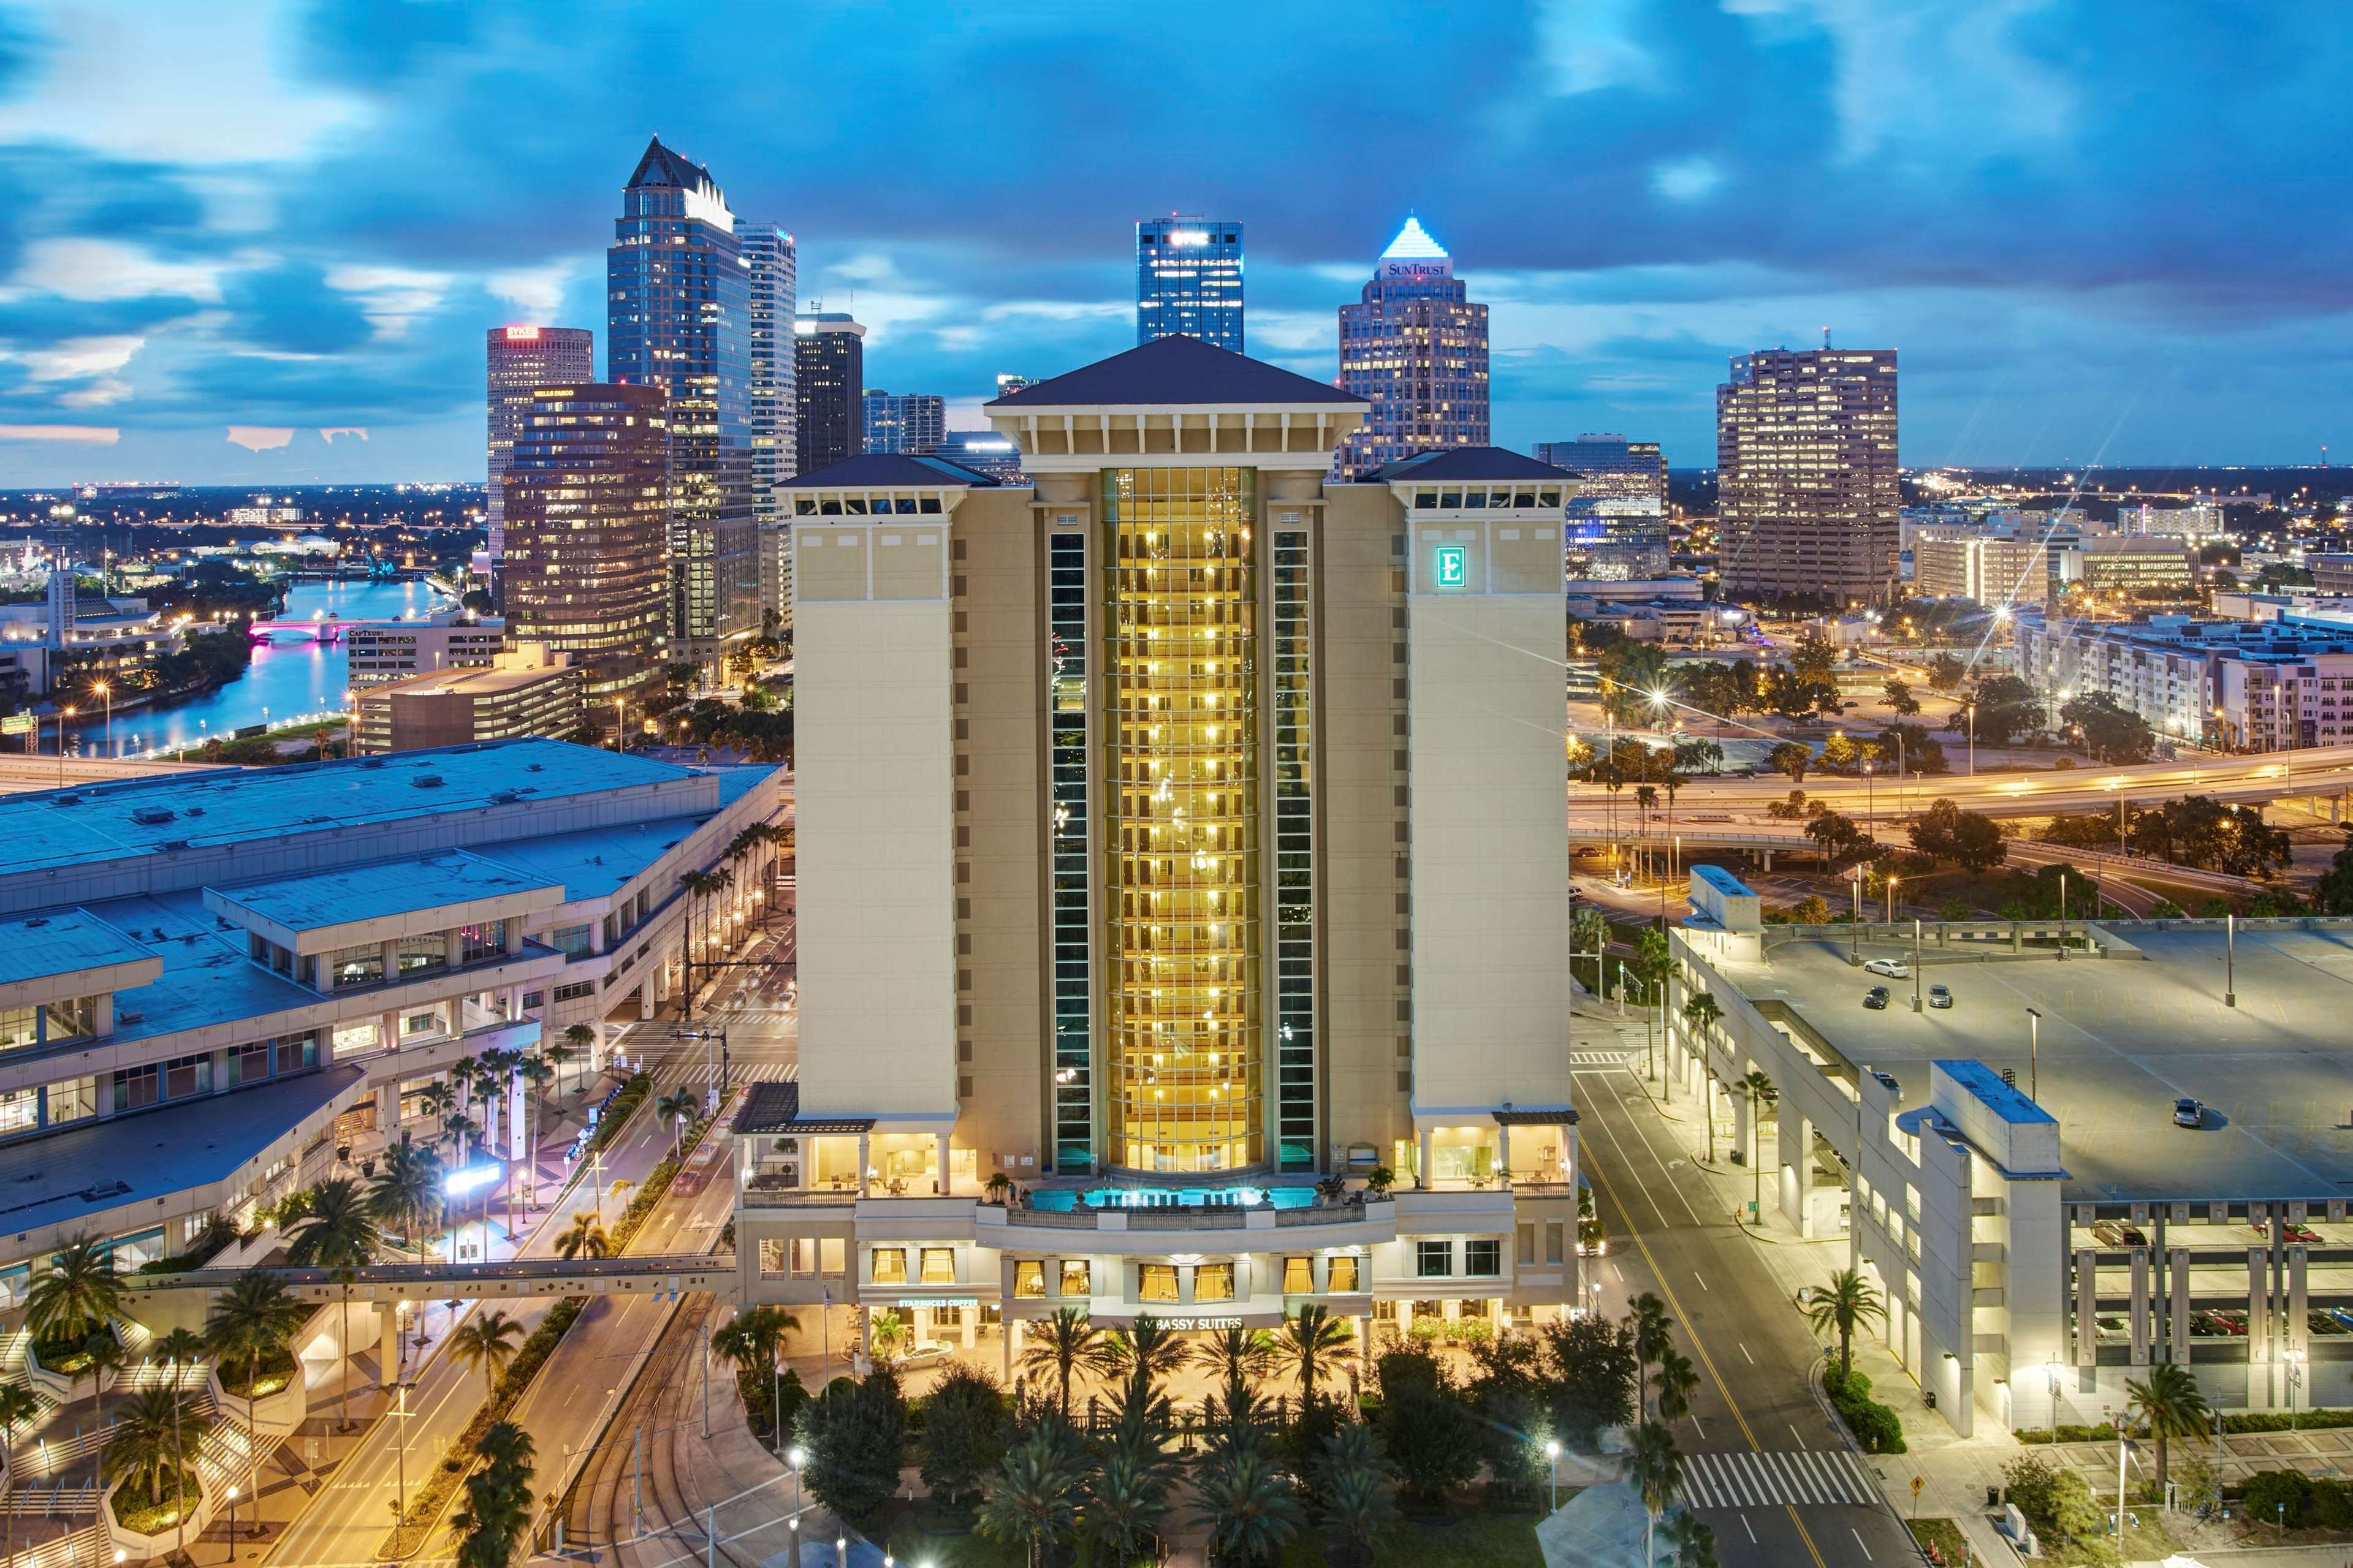 Downtown Tampa Hotels Near Convention Center